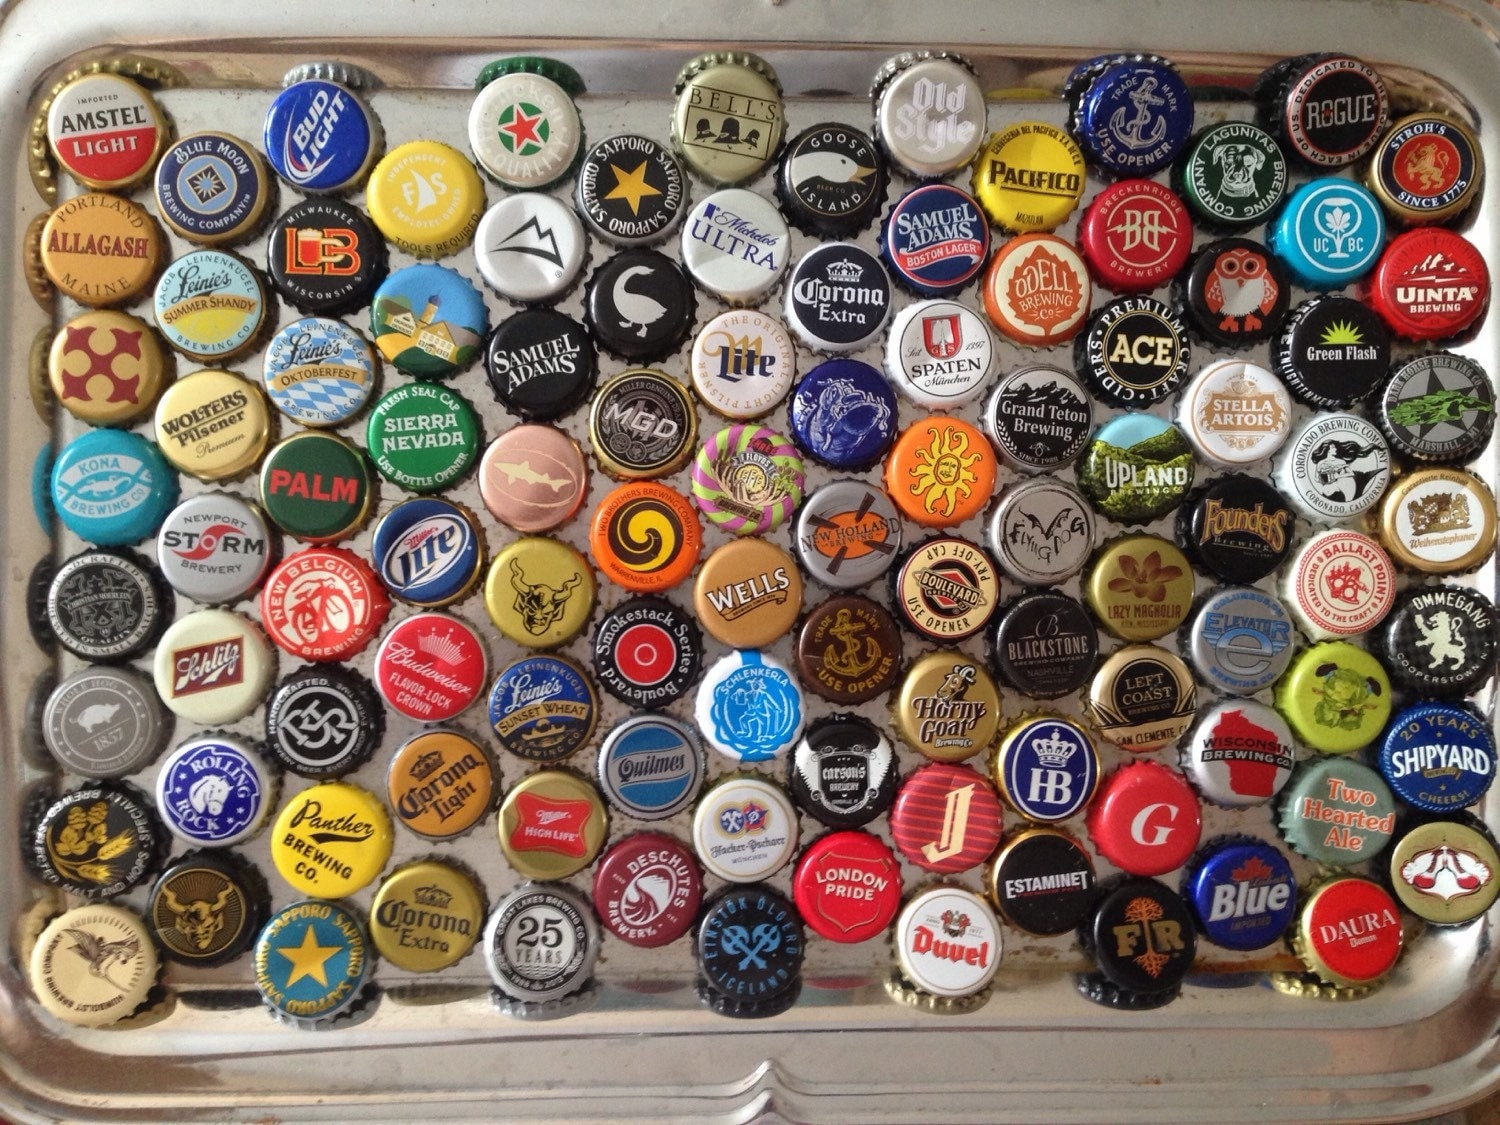 Craft beer bottle cap magnets microbrewery beer bottle cap for What can i make with beer bottle caps